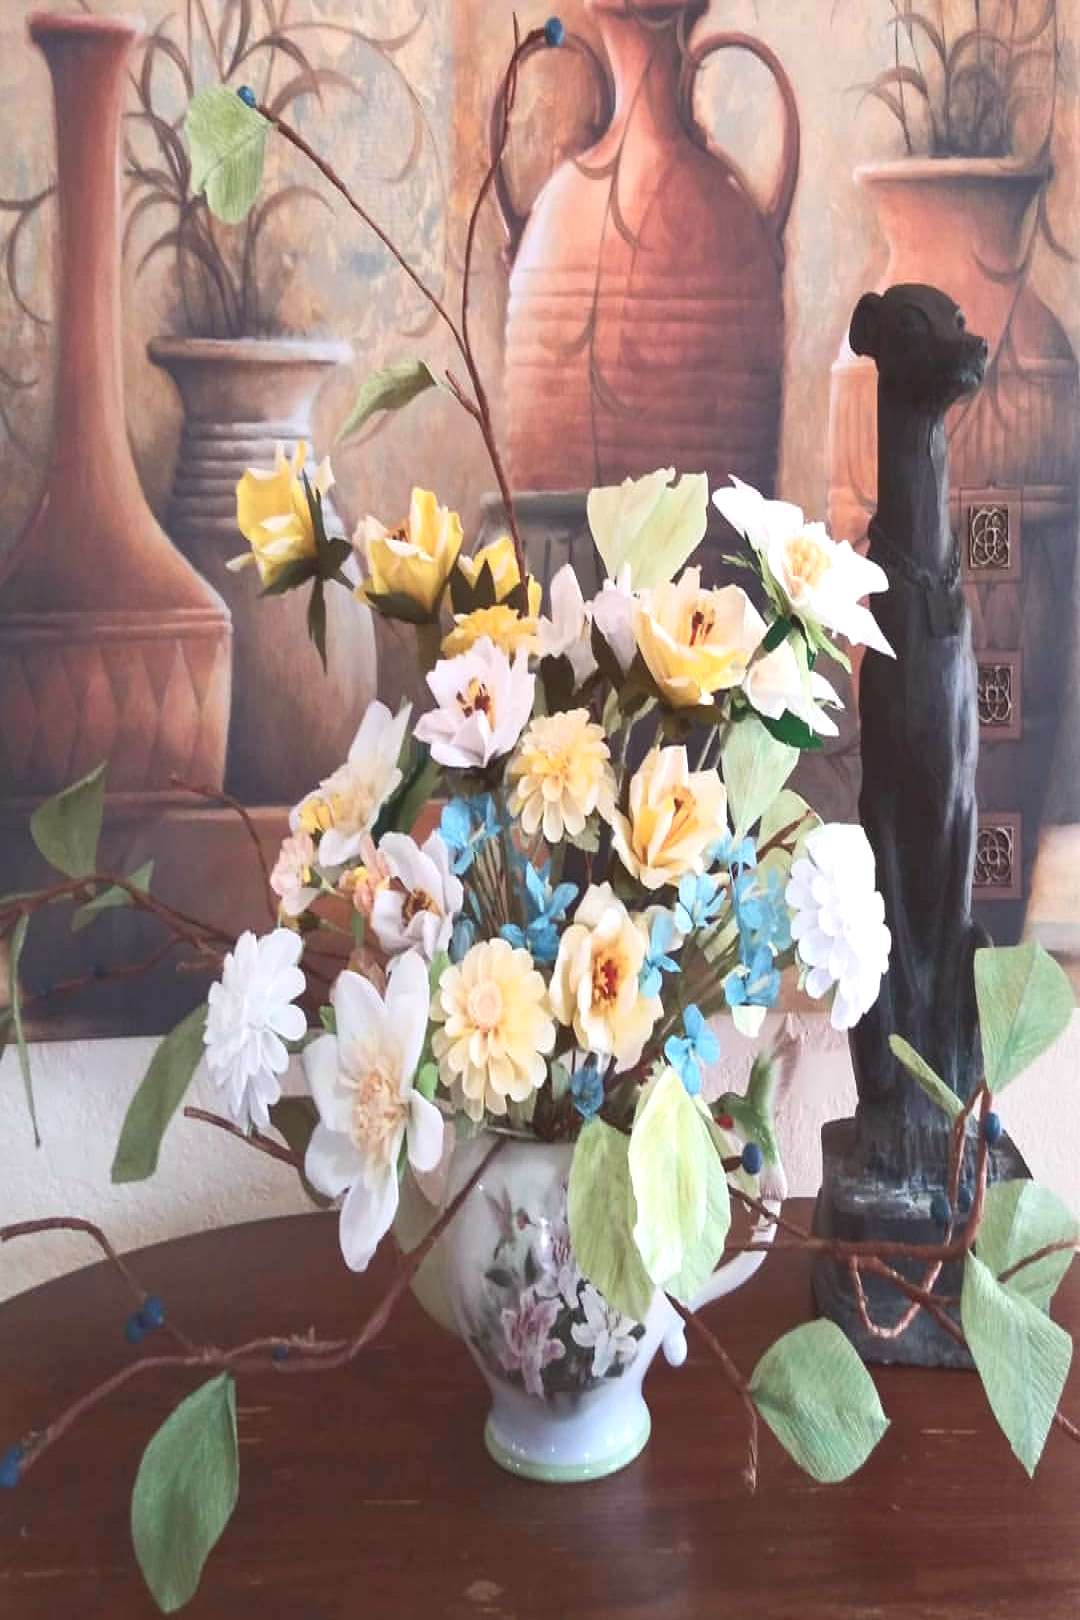 Photo Bomb! Finished the Yellow and Blue Arrangement from #paperf